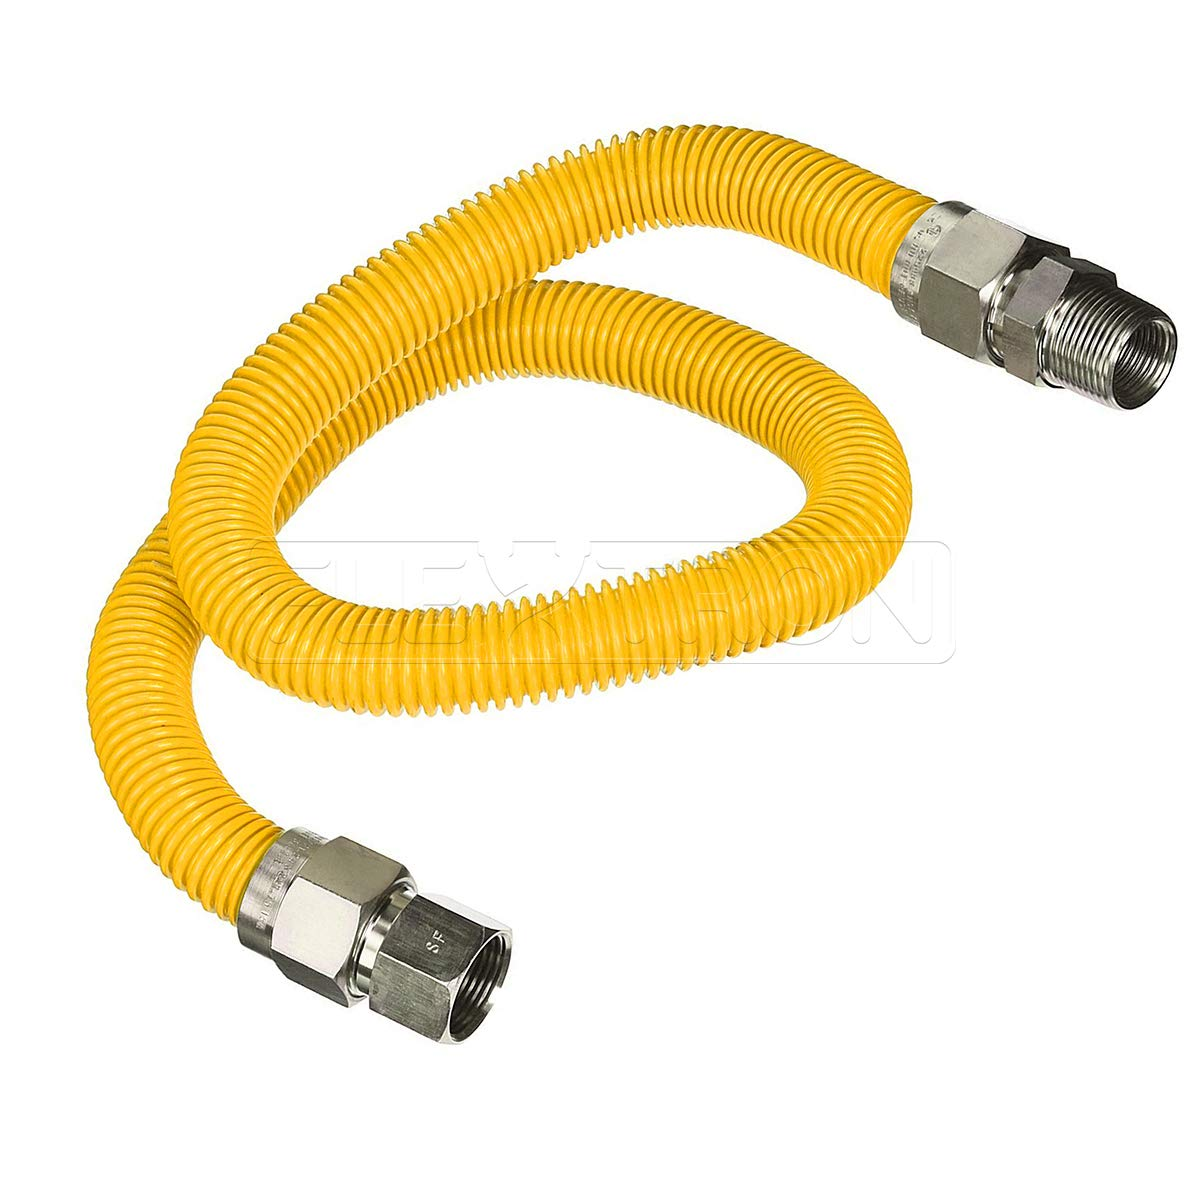 Flextron FTGC-YC12-60C Flexible Epoxy Gas Line, Gas Pipe Connector With 5/8 in. Outer Diameter and 1/2 in. Inside Diameter; 1/2 in. FIP x 1/2 in MIP Fittings; Yellow/Stainless Steel Gas Hose 60 in. Long